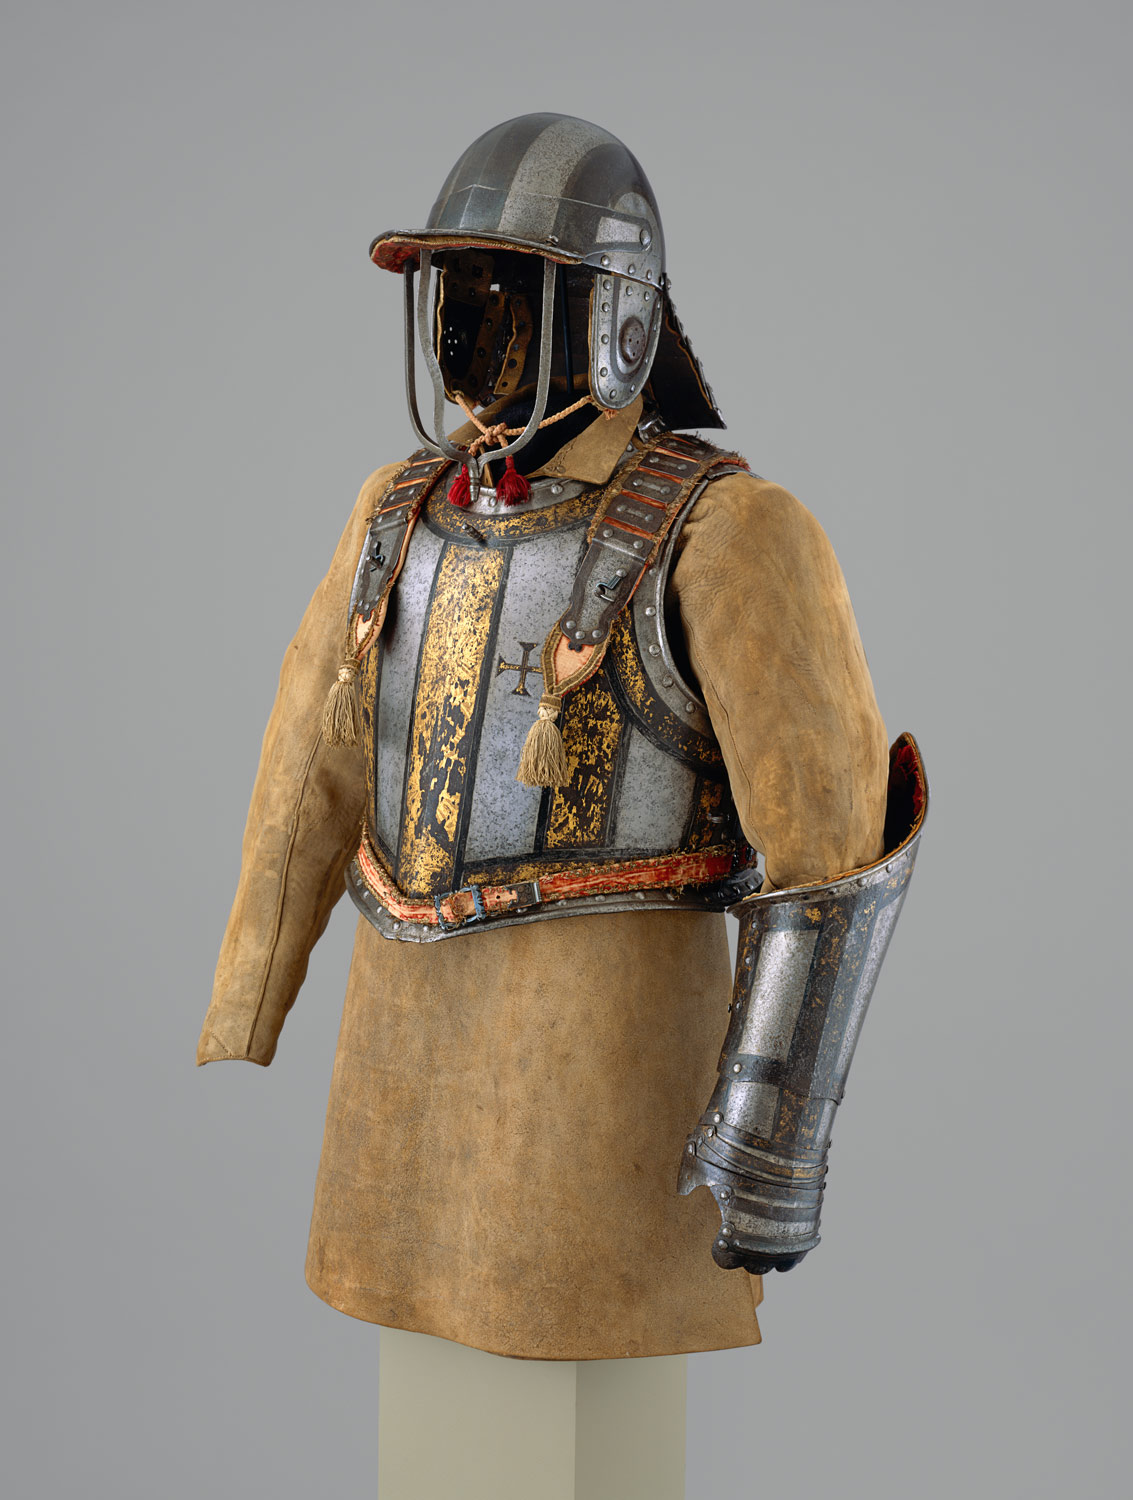 Harquebusiers Armor of Pedro II, King of Portugal (reigned 1683–1706) with Buff Coat